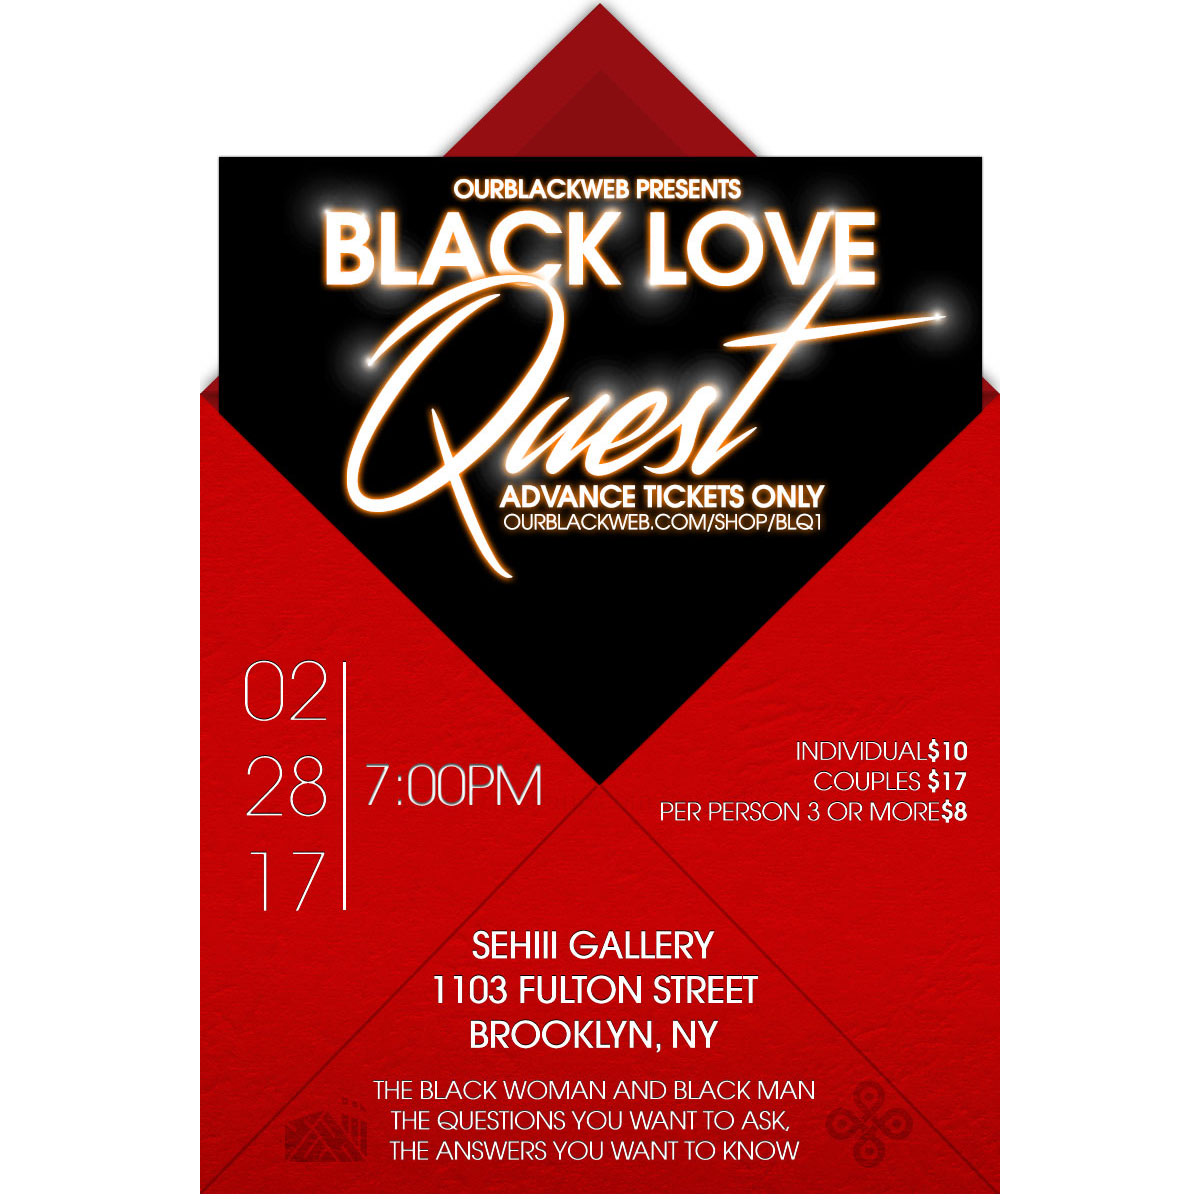 """An open forum discussion between the black woman and the black man. Questions you would like discussed on the day of the event can be submitted anonymously to our poll in the """"Product Description"""" area of https://www.ourblackweb.com/shop/blq1/  Good spirits, great questions, and black love is welcome!"""